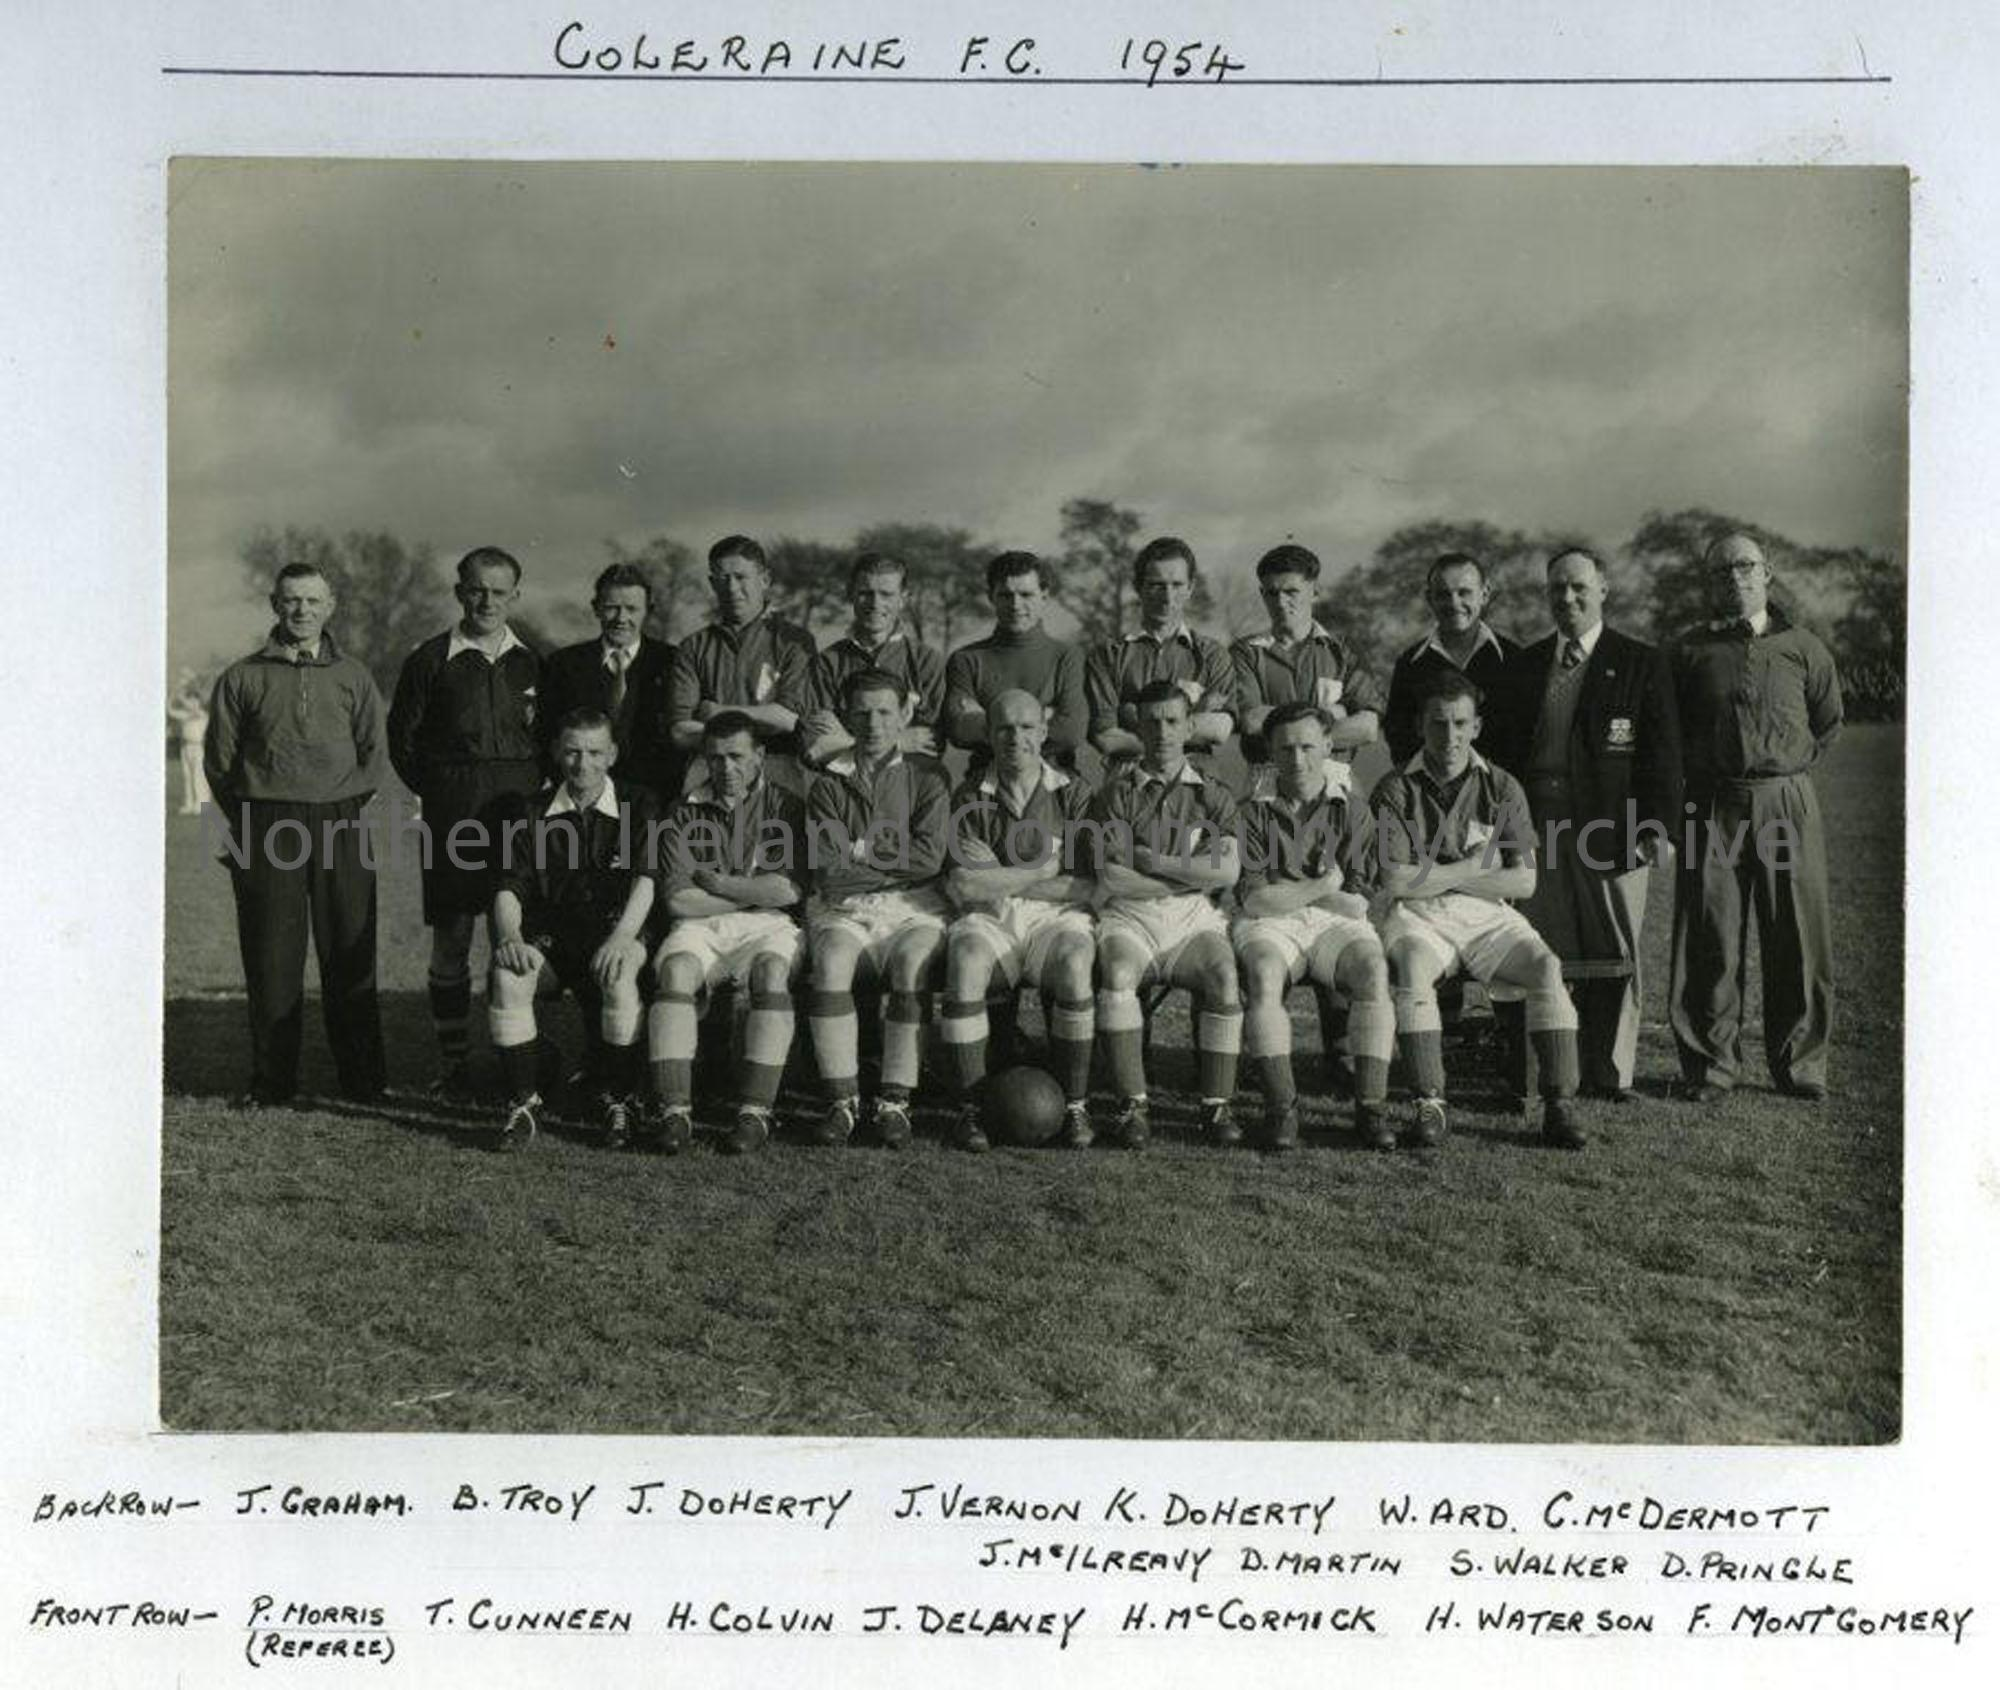 Coleraine Football Club 1954